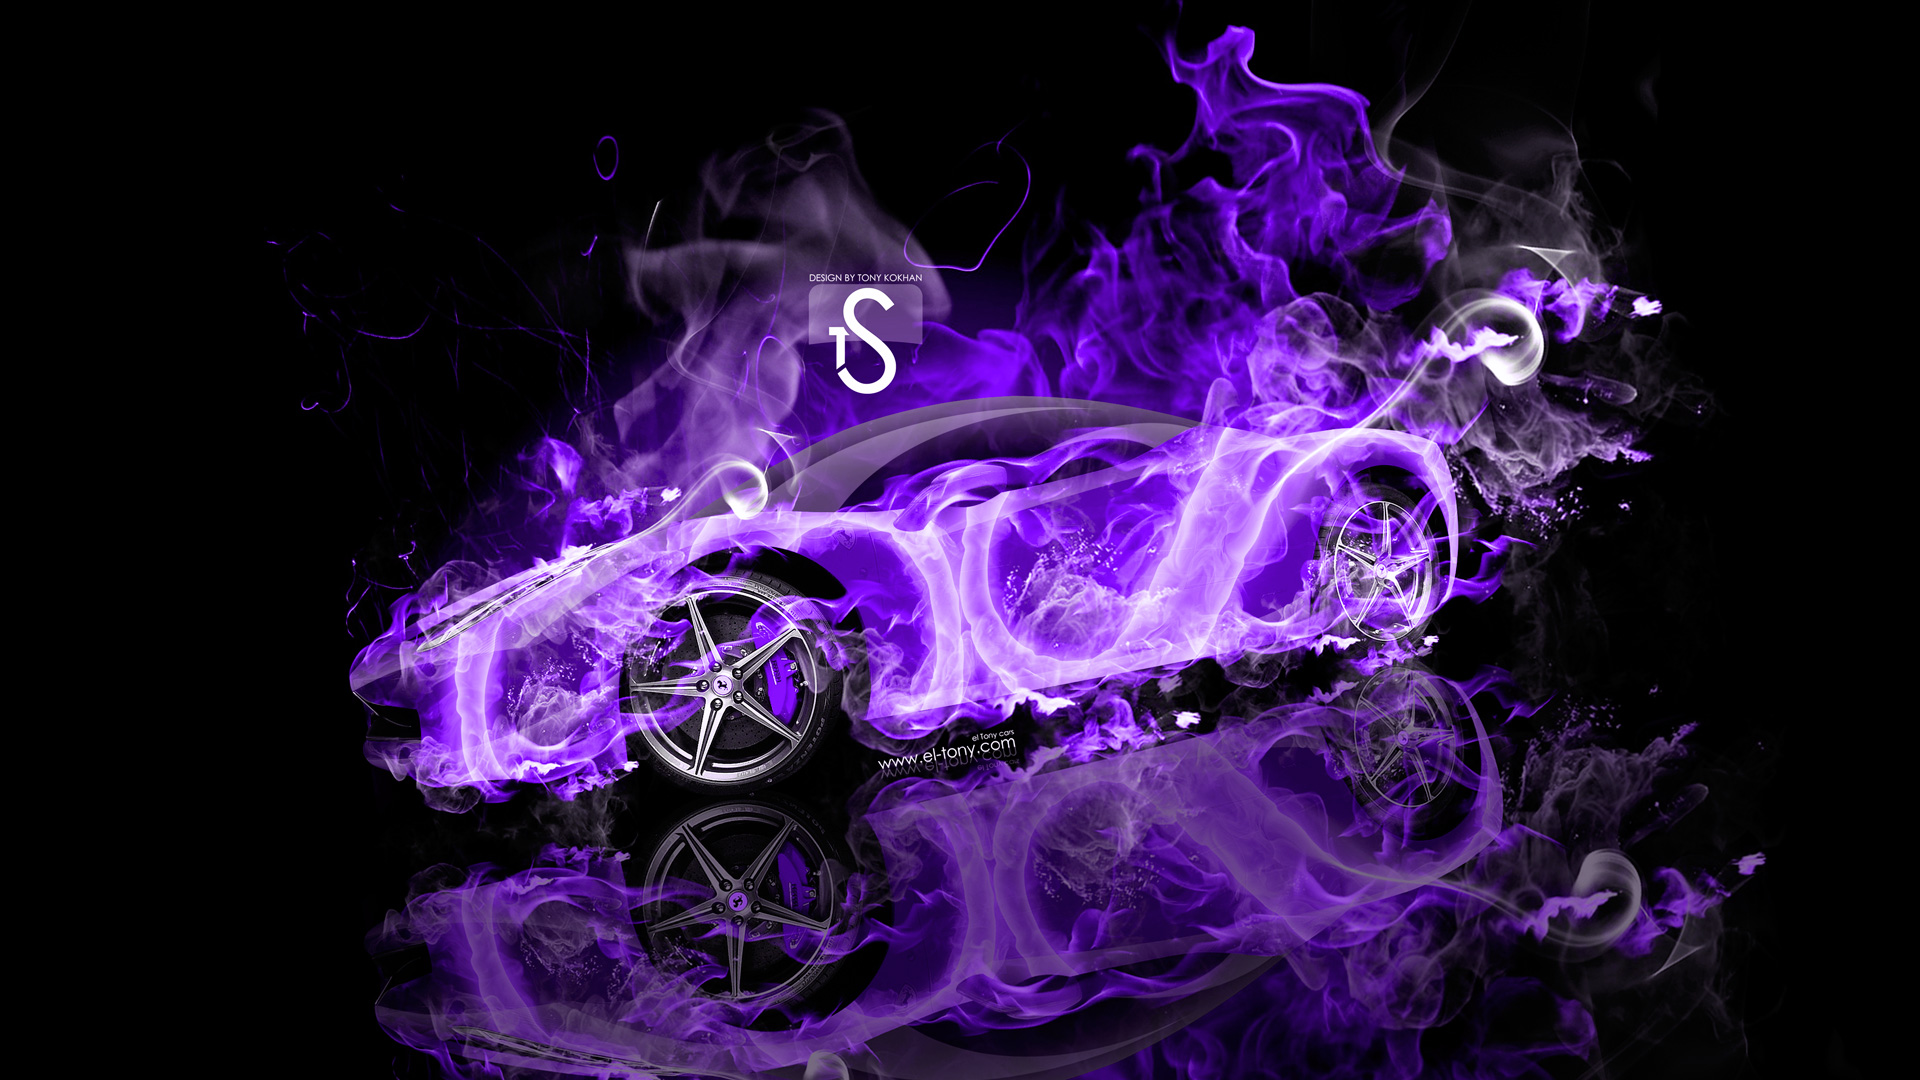 Ferrari Italia Violet Fire Abstract Car 2013 HD